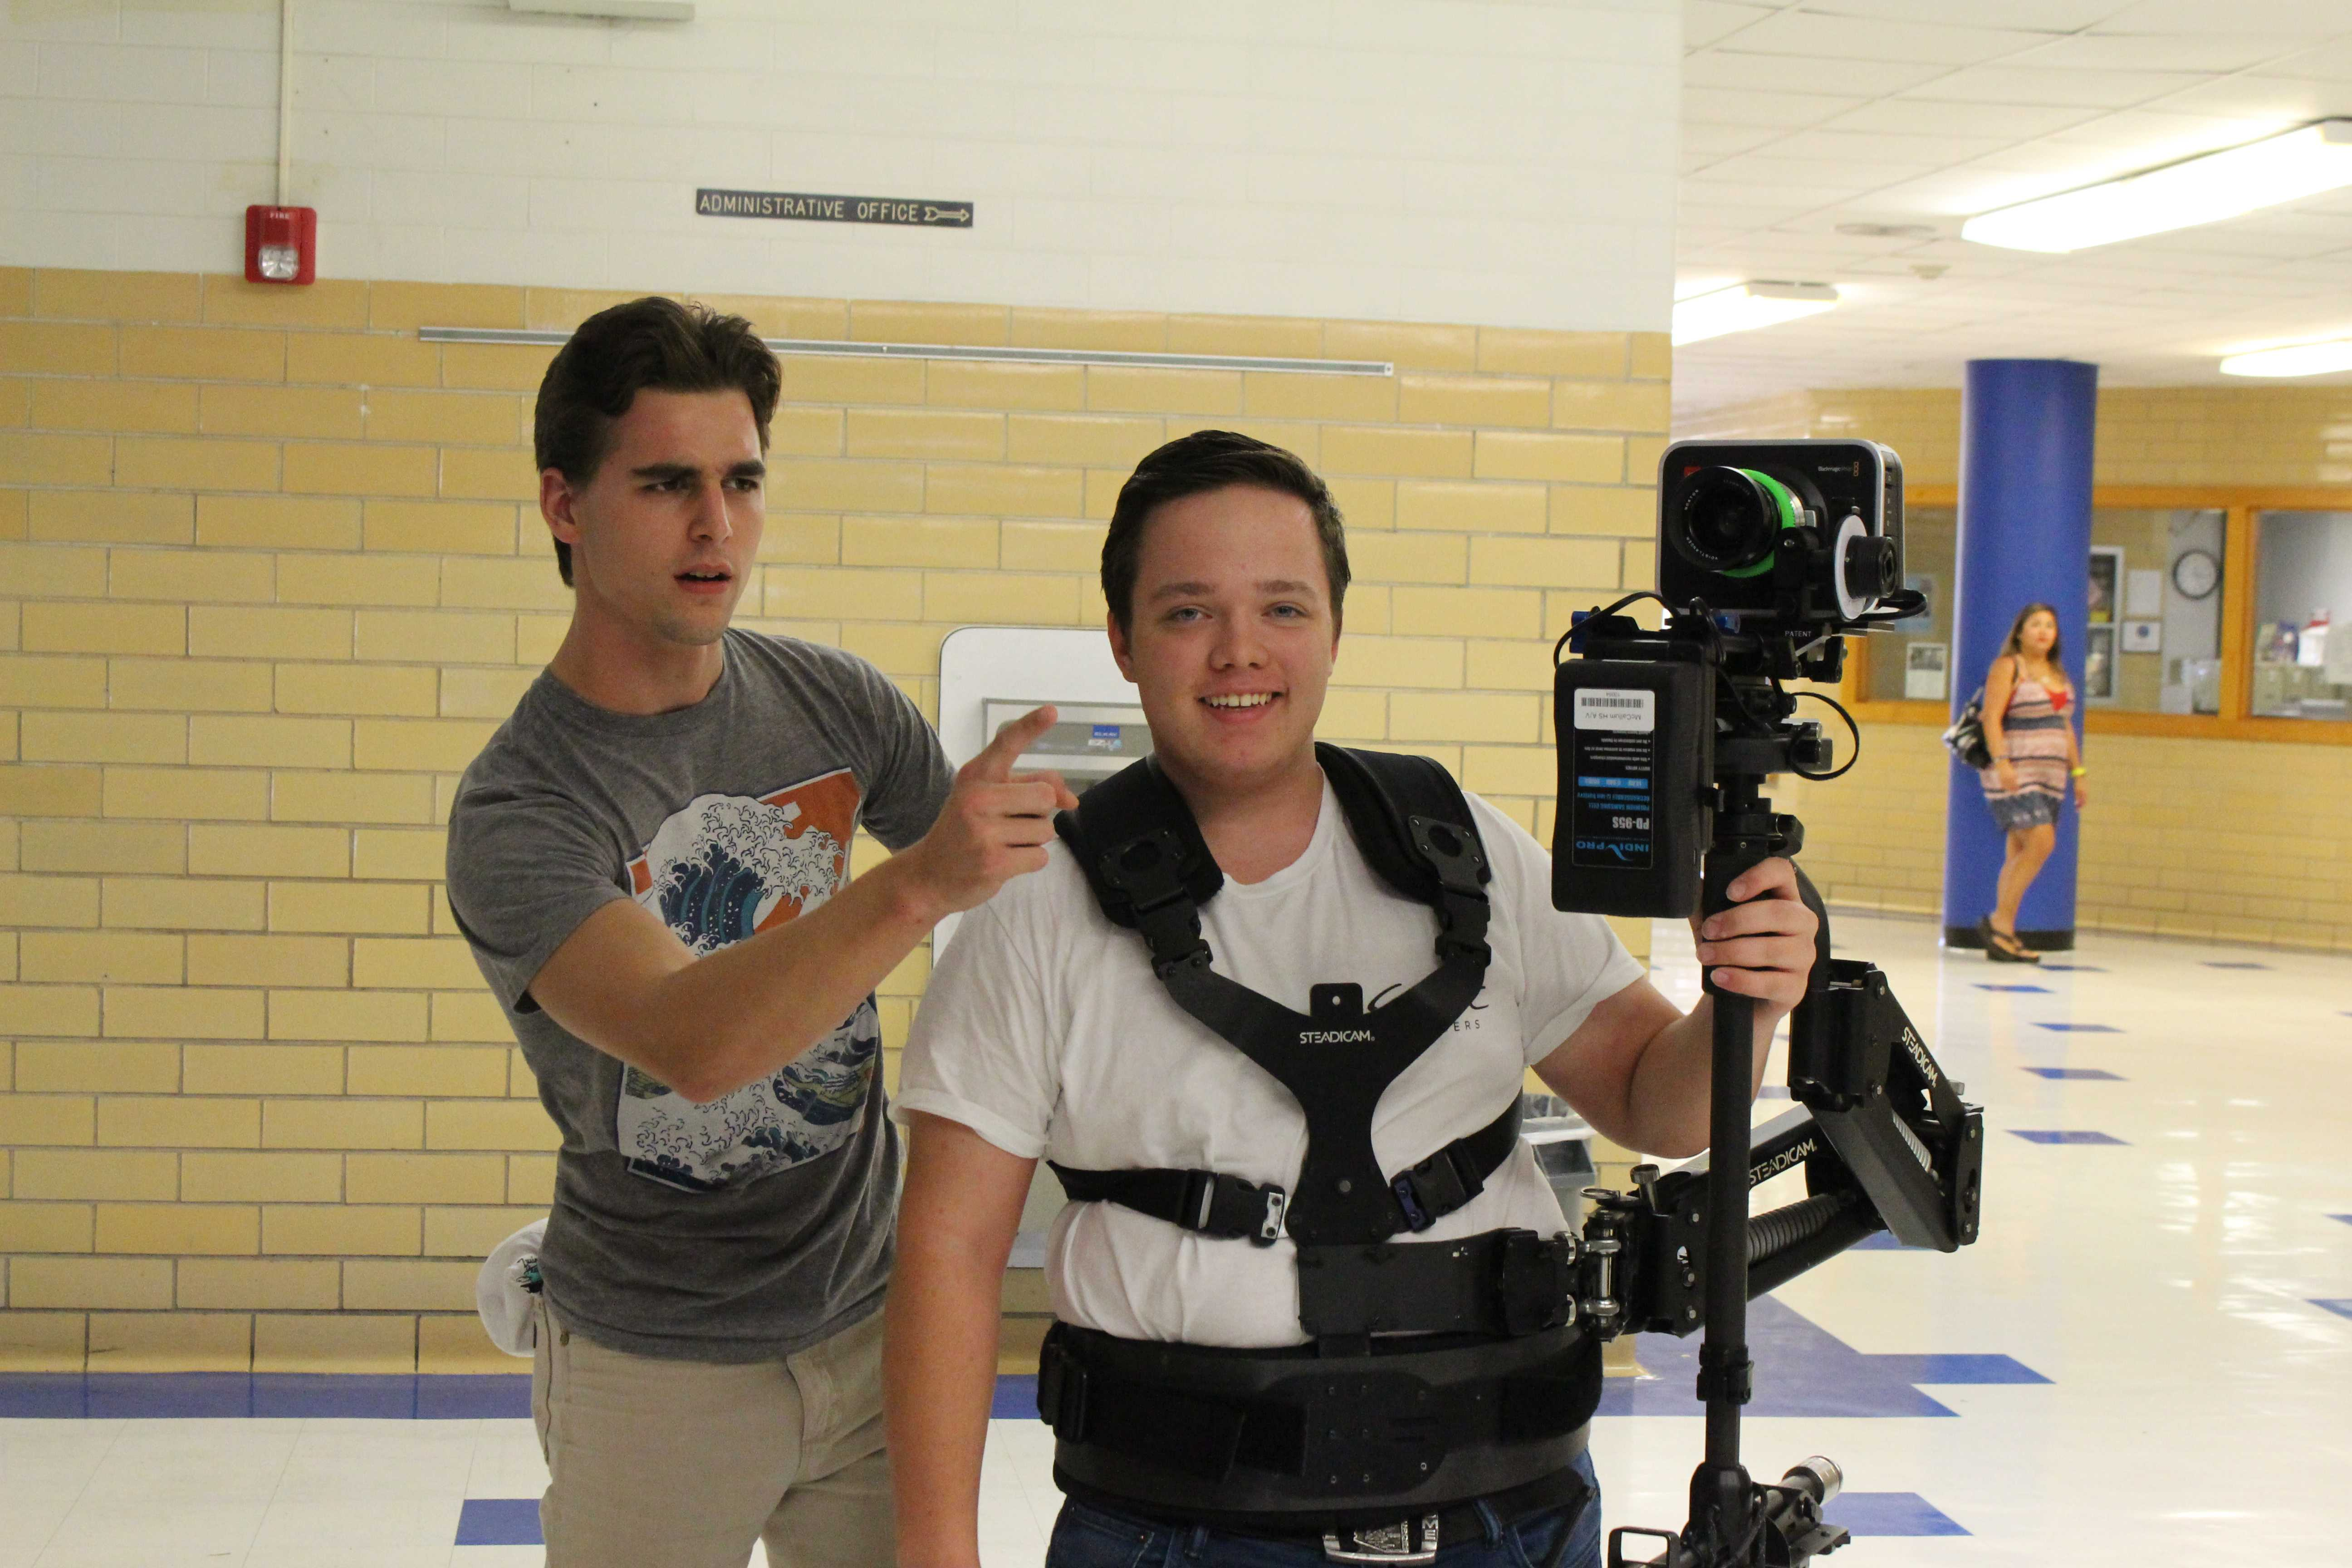 Senior William Magnuson helps junior Noah Powell use a steady cam while filming the Taco Shack Pep Rally.